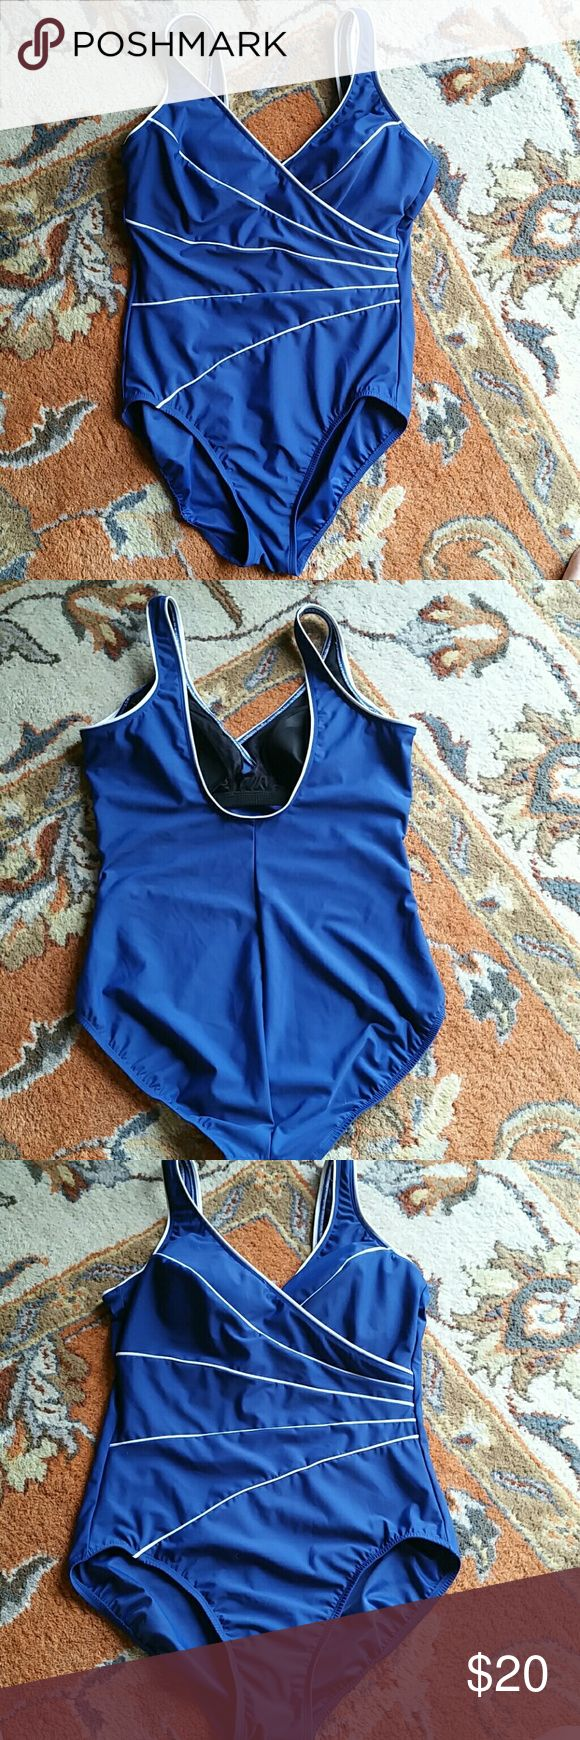 Kirkland miracle swimsuit size 12 Cute 70s look swimsuit size 12. Shows no signs of wear. Thick material light padded cups. Bust 18 inches across waist 14 1/2 hips 17 1/2 length 29 inches Vintage Swim